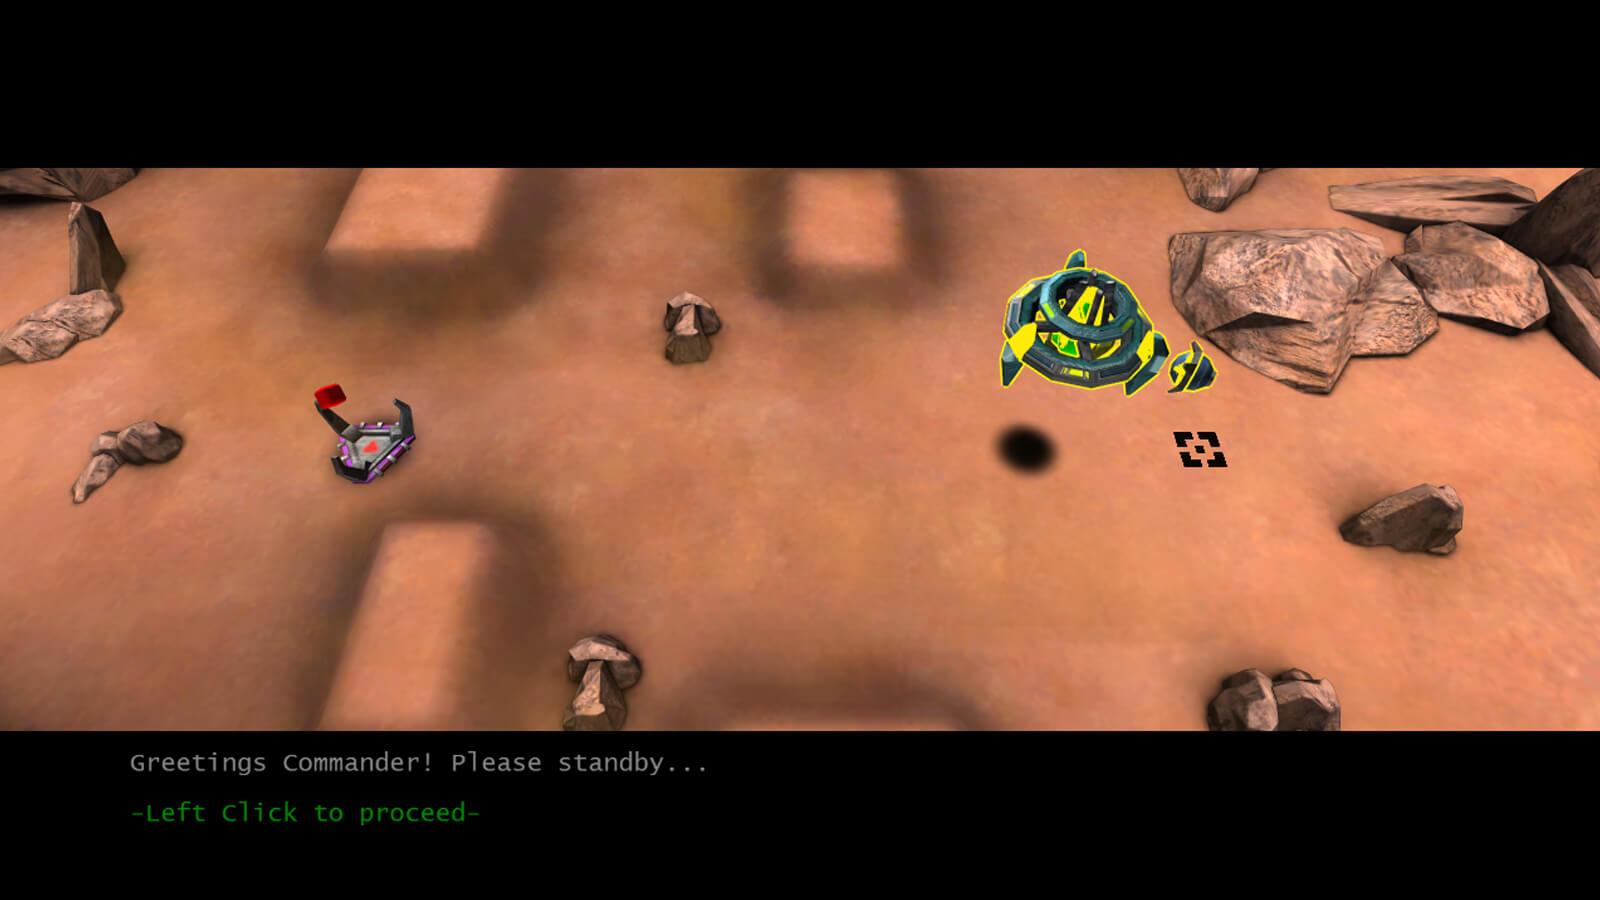 The player's green and yellow ship hovers above rocky terrain